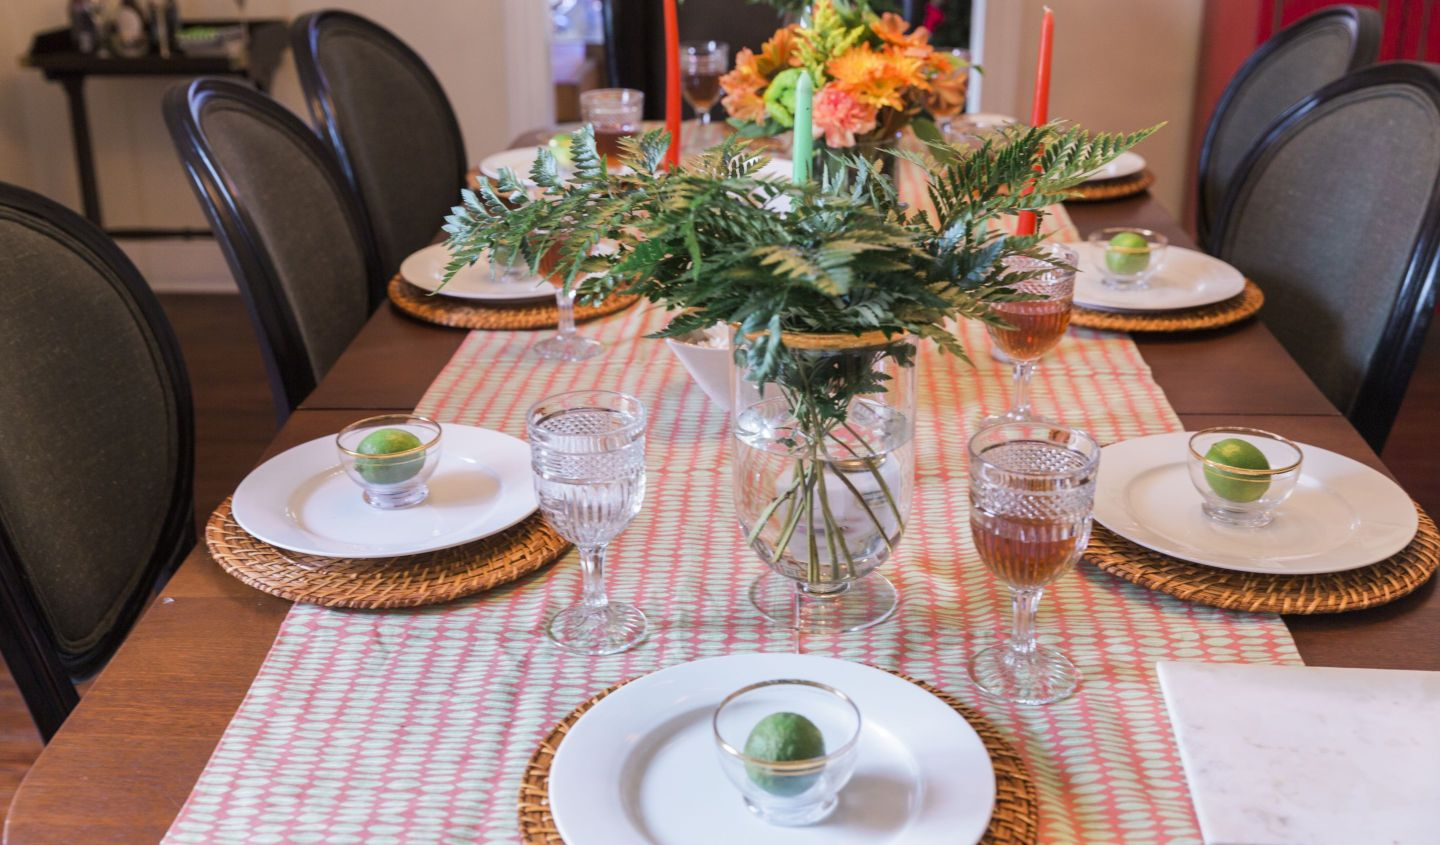 Black-Southern-Belle0074-1440x845 Rattler-Inspired: Orange and Green Spring Dinner Party